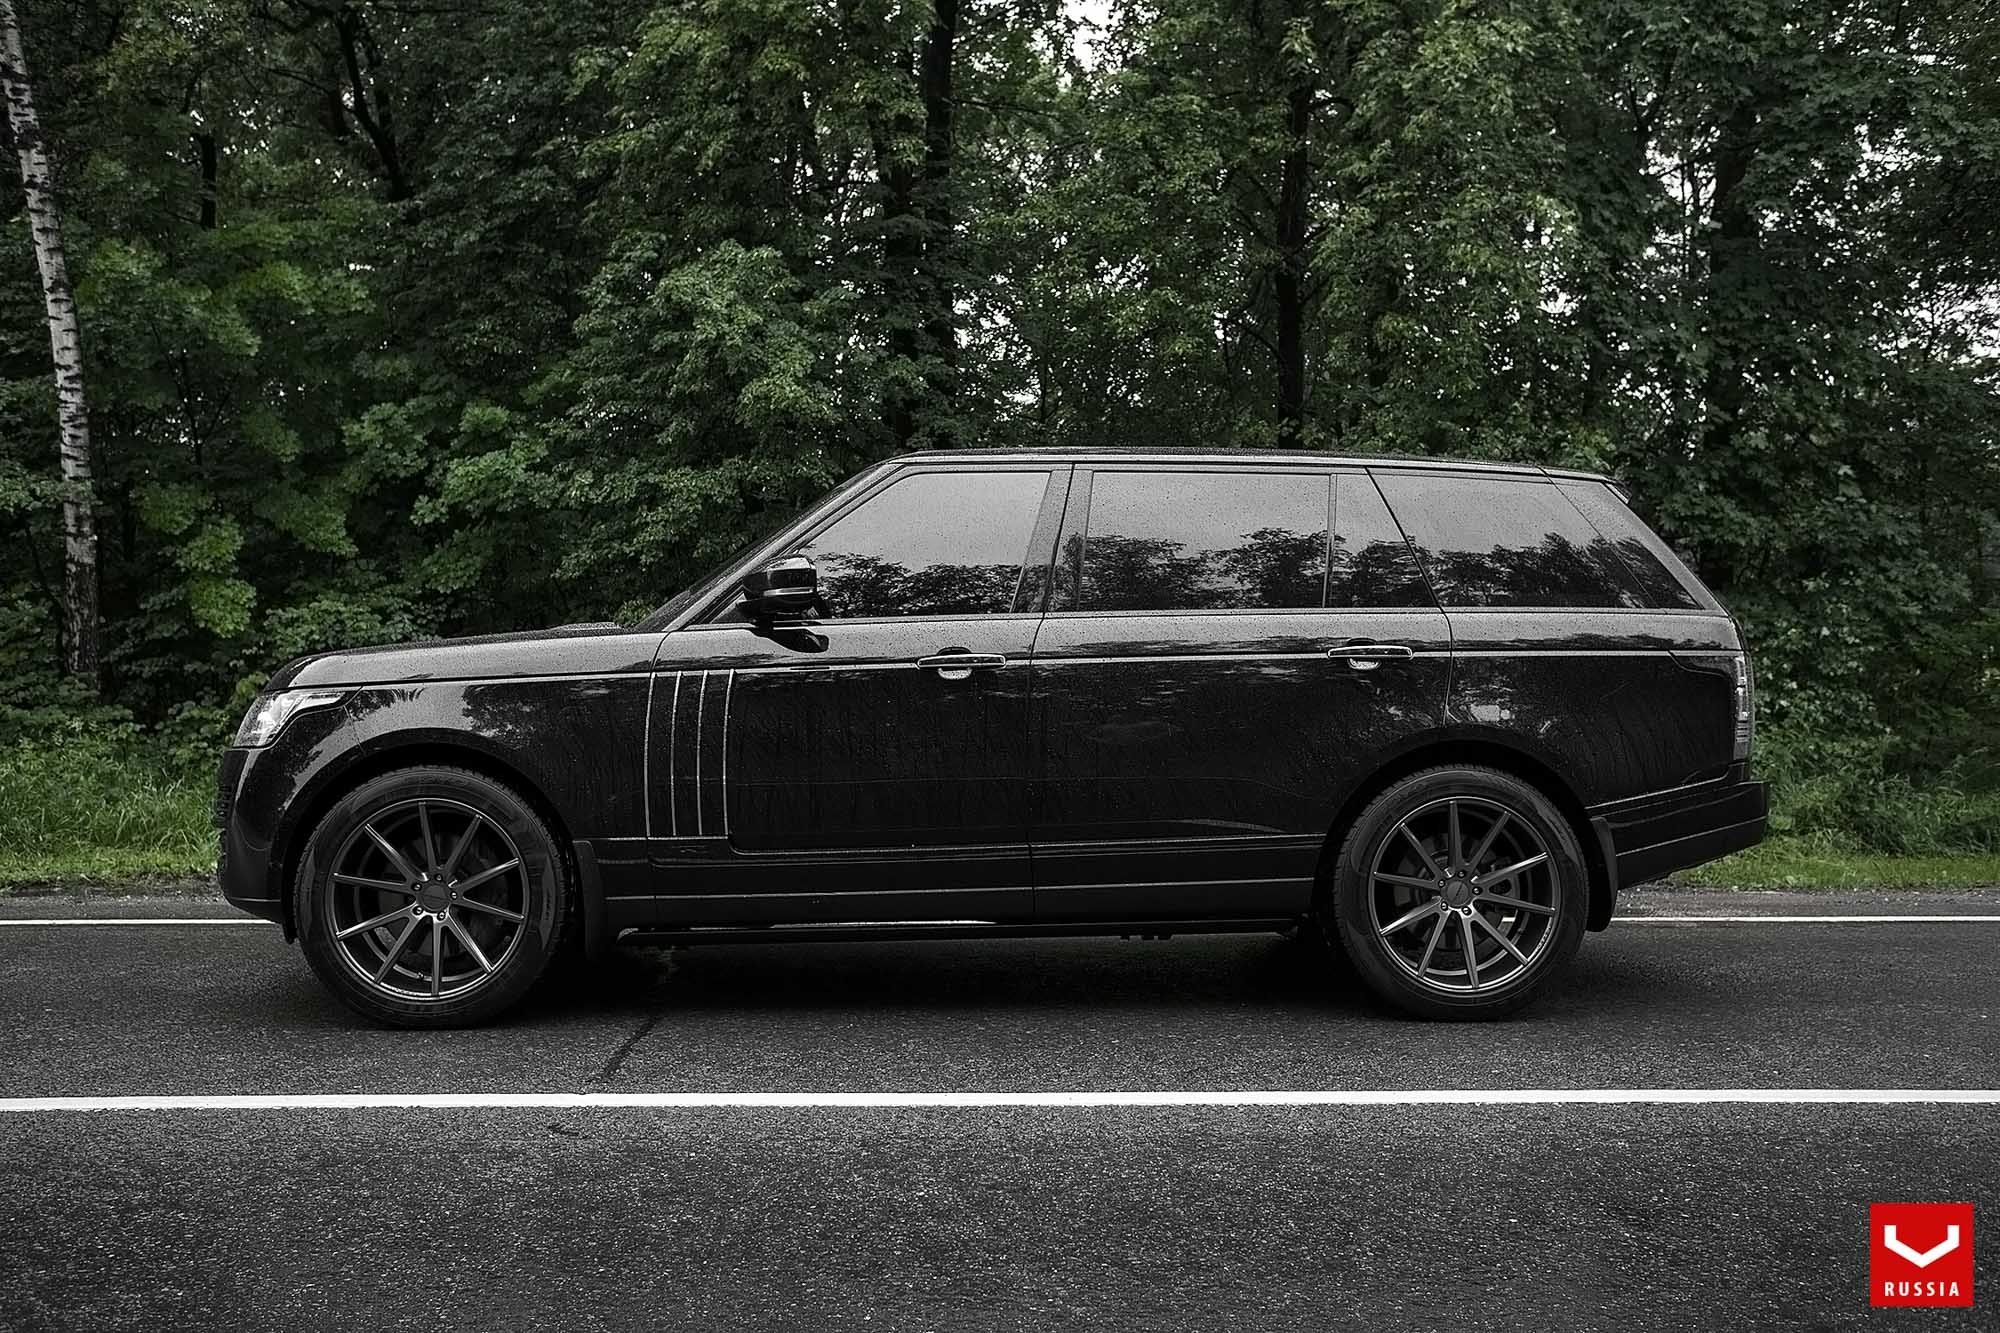 Range Rover Rocking a Blacked Out Grille and a Set of Vossen Wheels